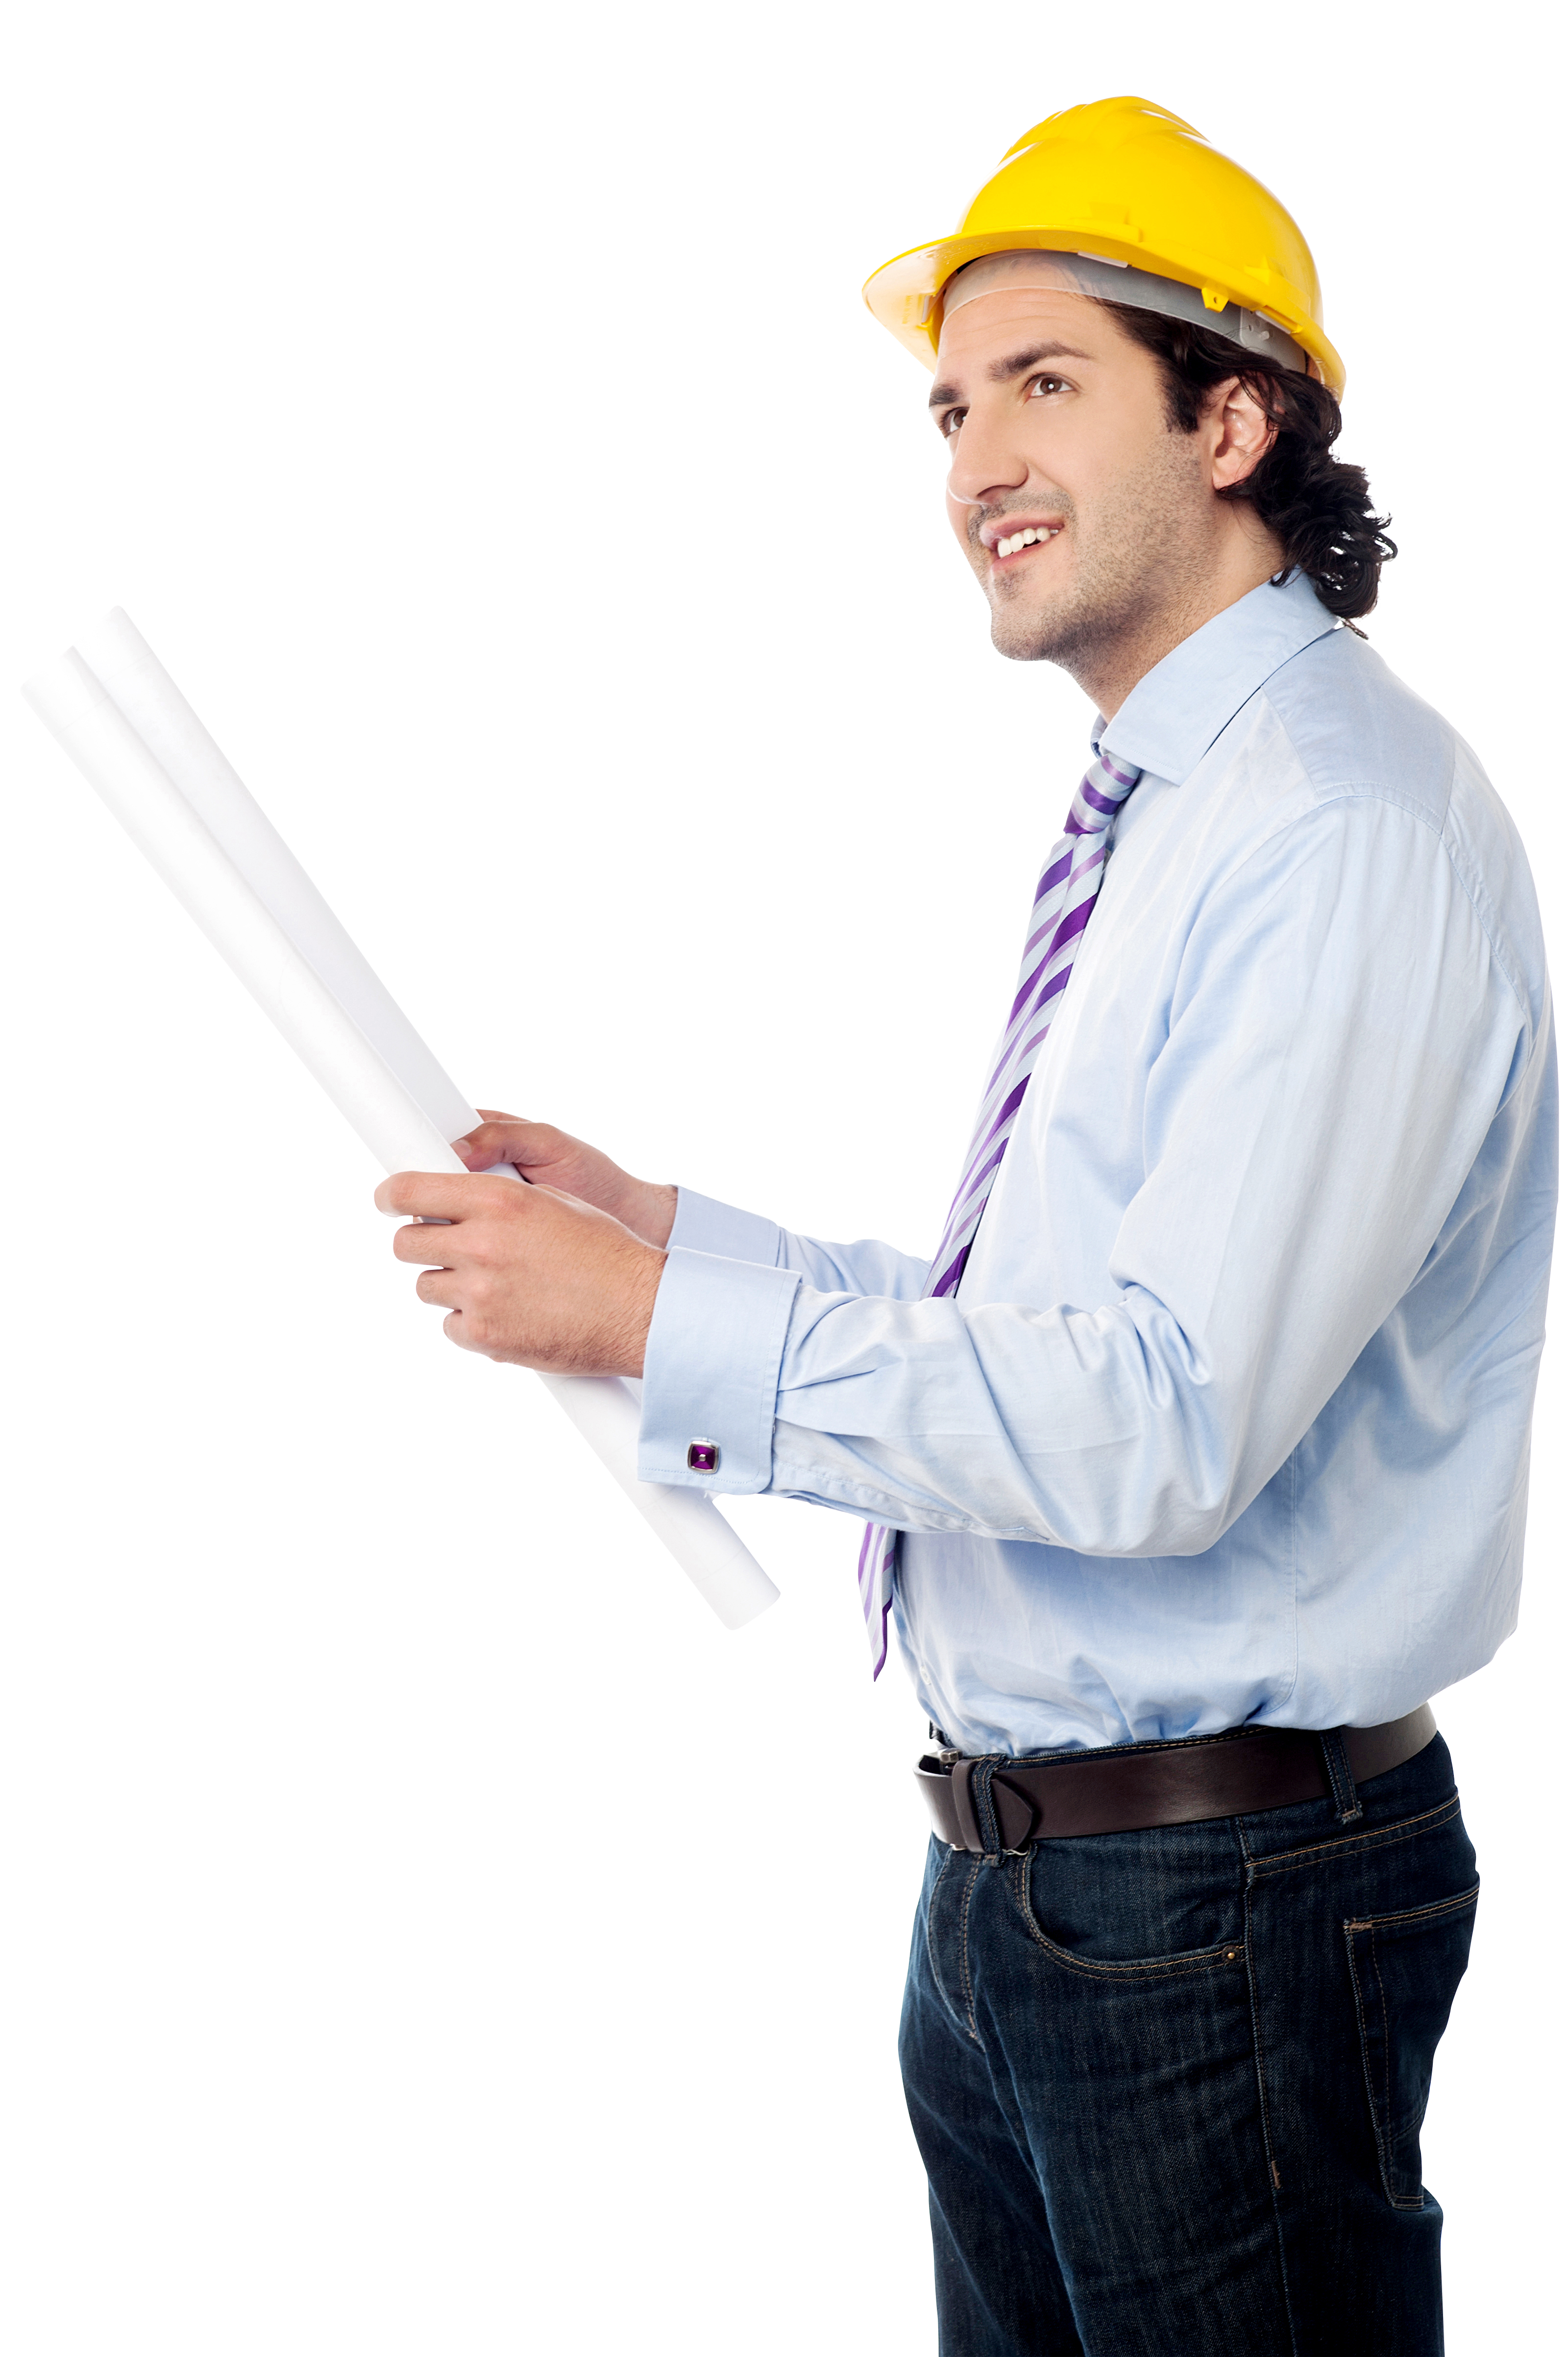 Architects At Work Free Commercial Use PNG Image.